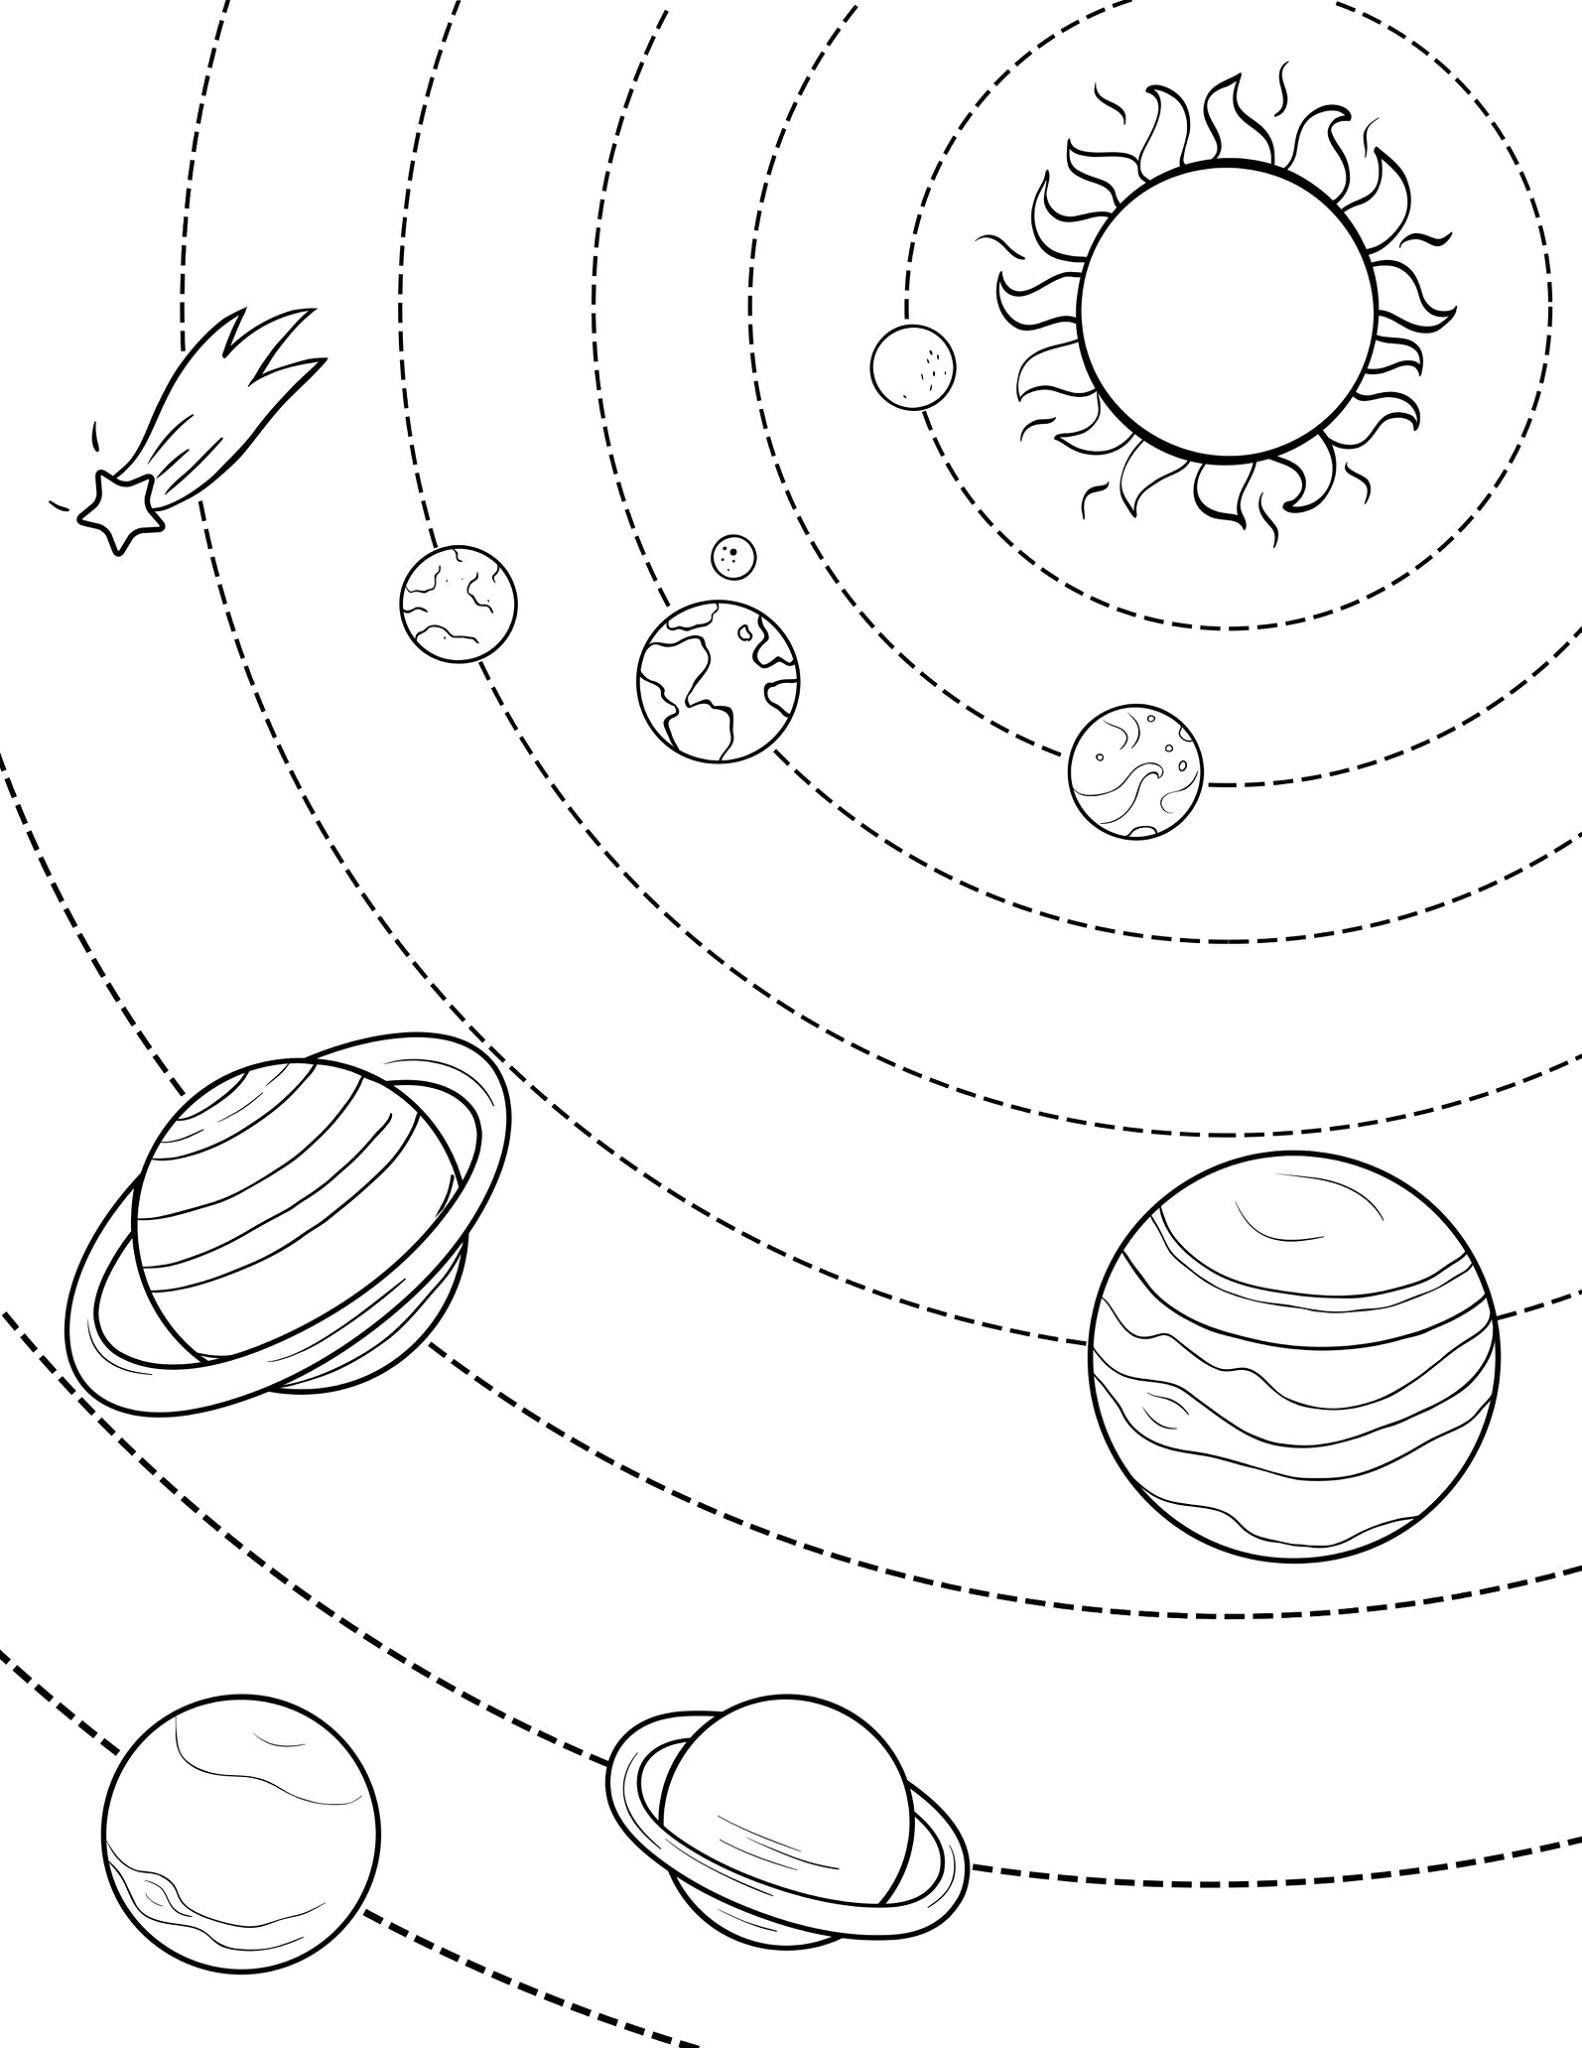 planet pictures to color printable planet coloring pages for kids cool2bkids pictures to planet color